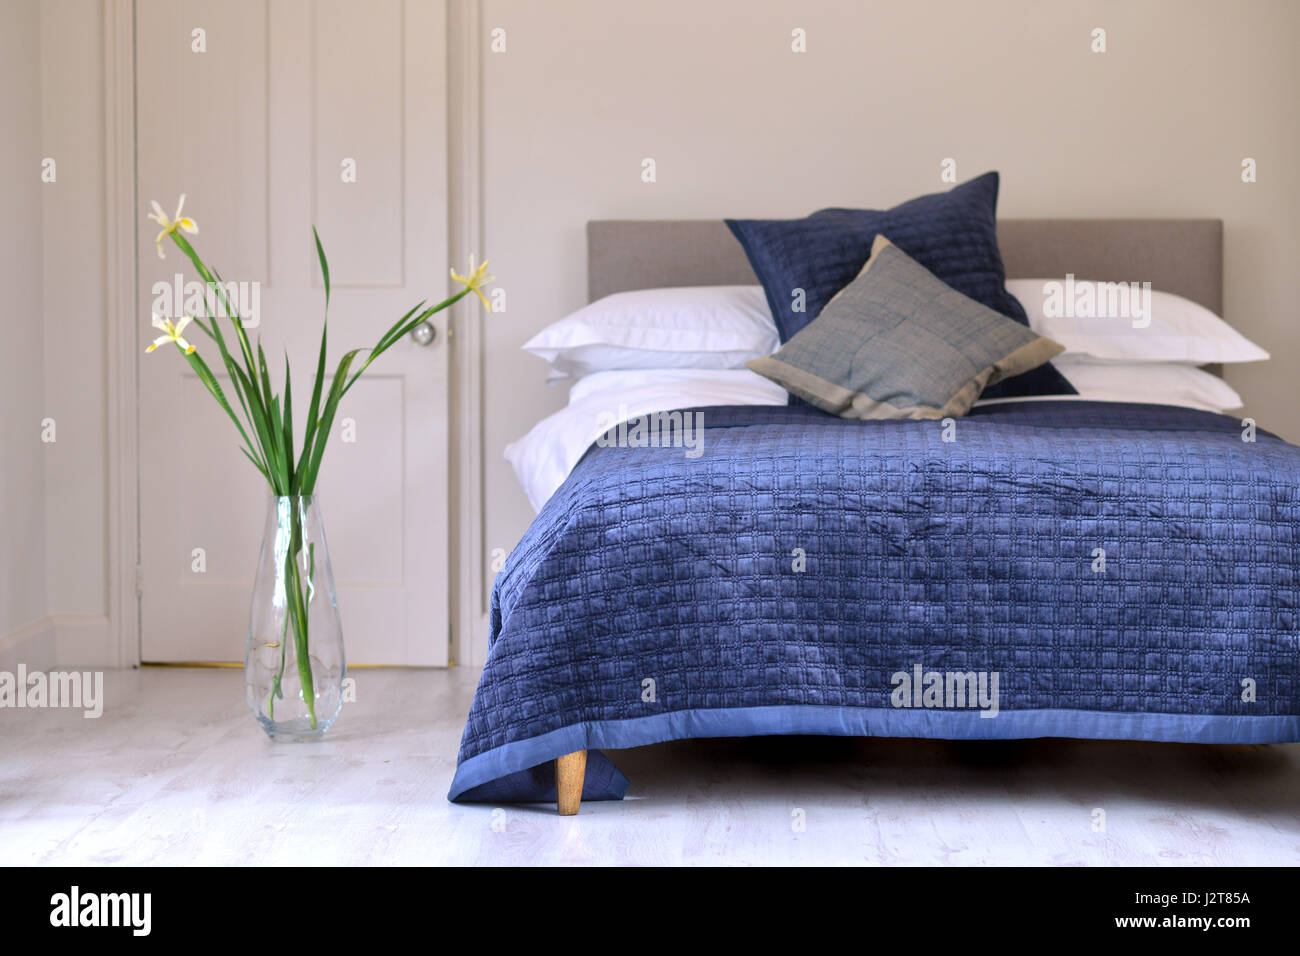 Bedroom and bed with blue quilt - Stock Image